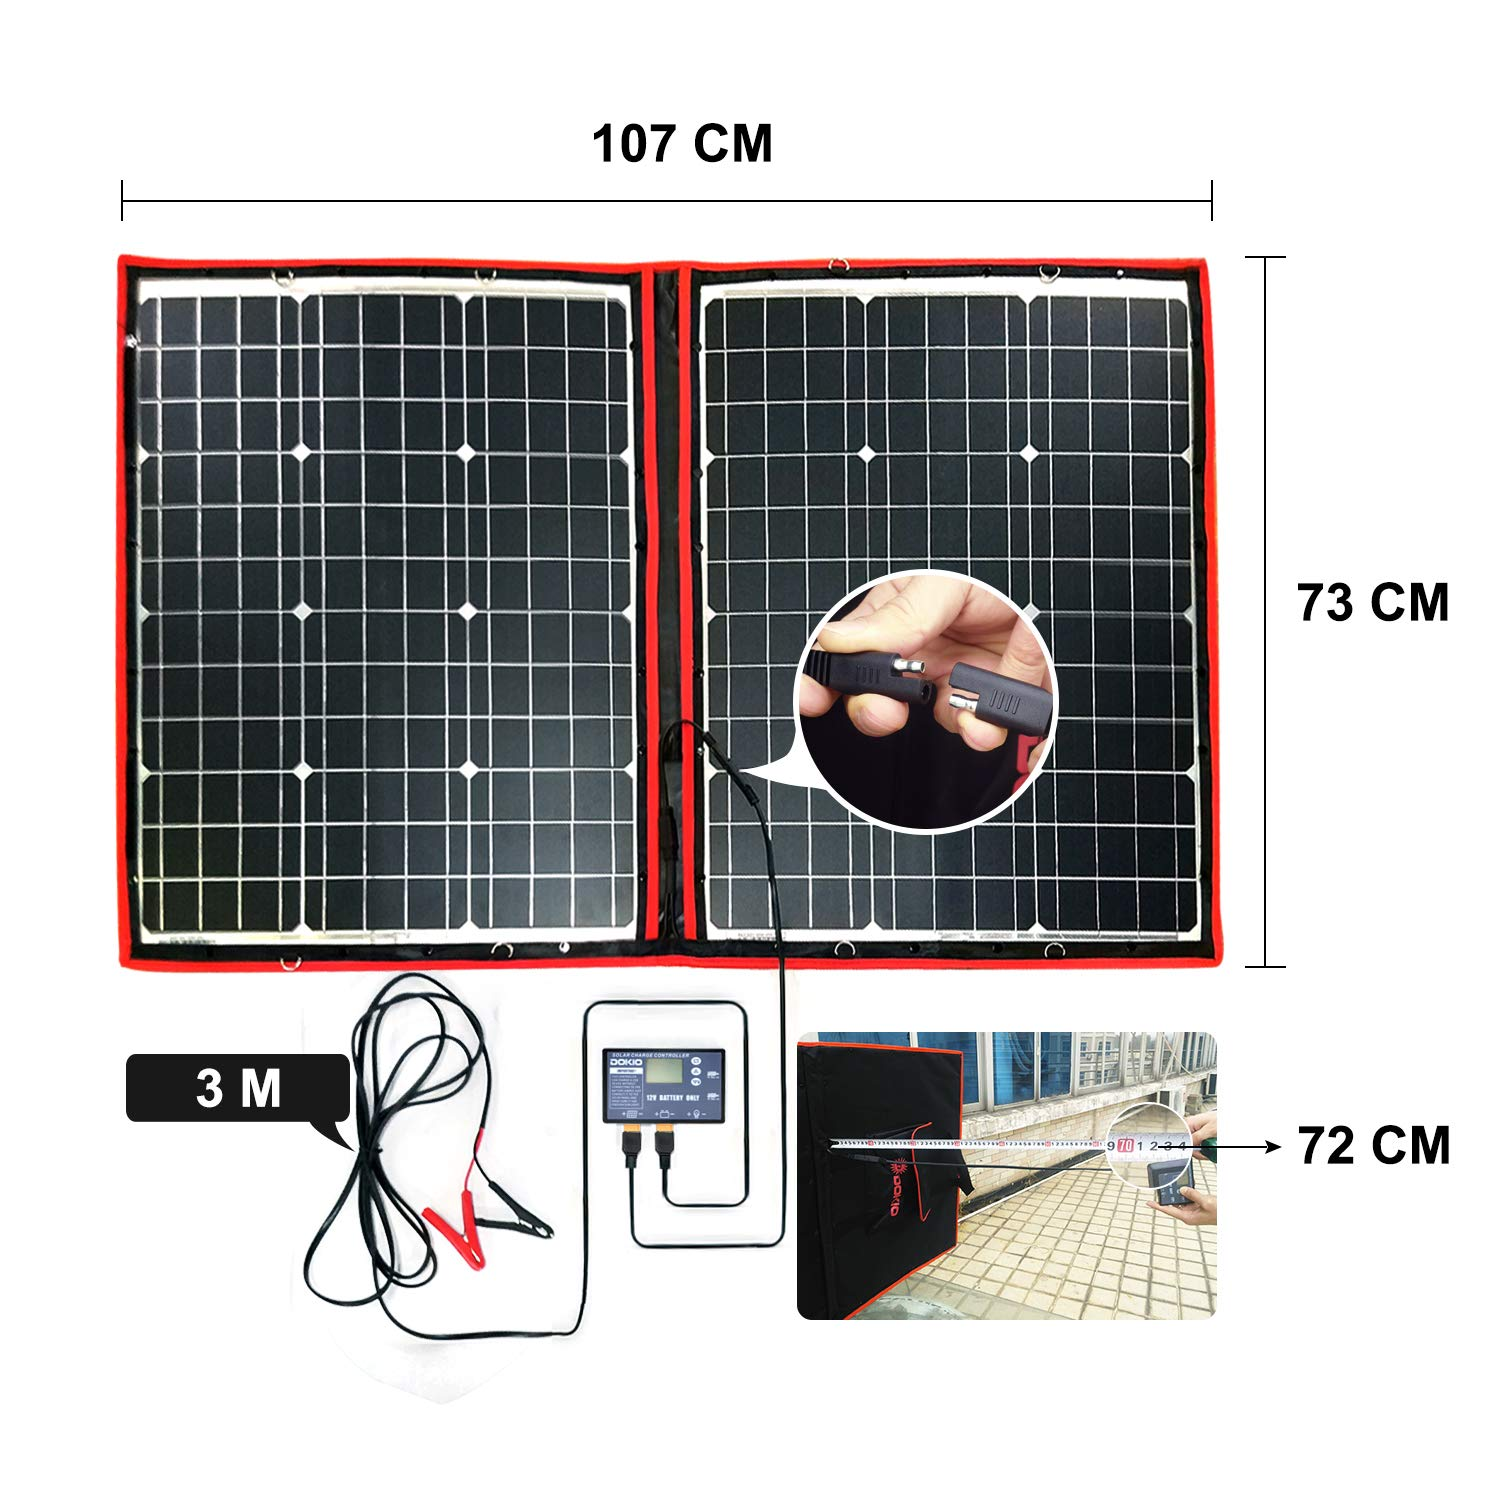 DOKIO 100 Watts 12 Volts Monocrystalline Foldable Solar Panel with Charge Controller by DOKIO (Image #6)